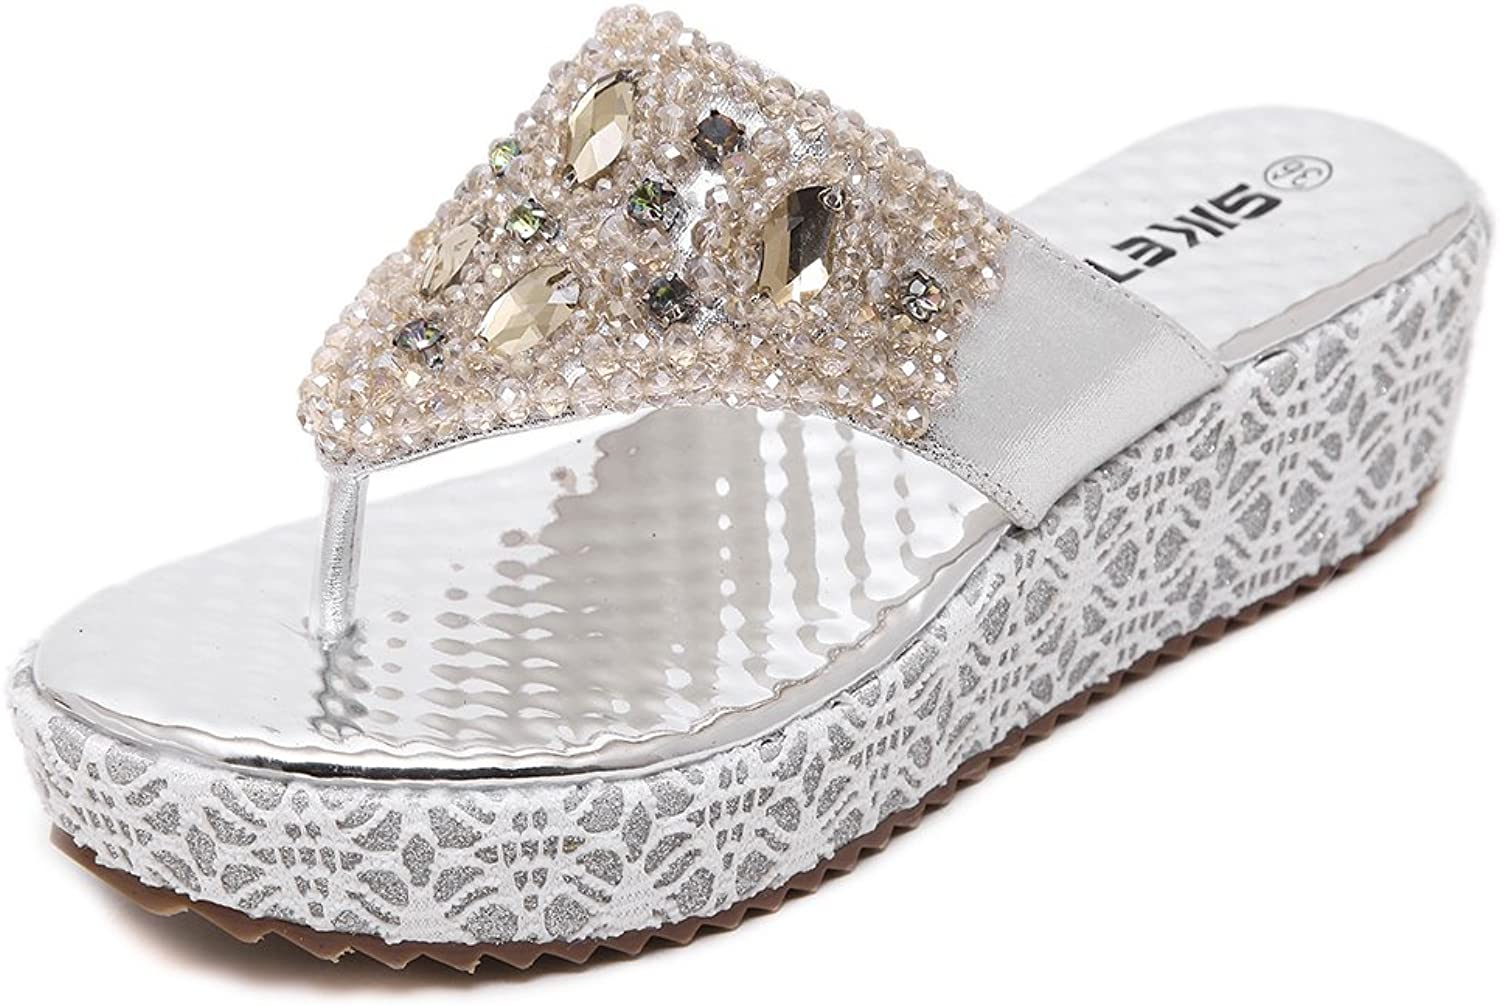 Tuoup Leather Jeweled Fashion Platform Womens Thong Sandals